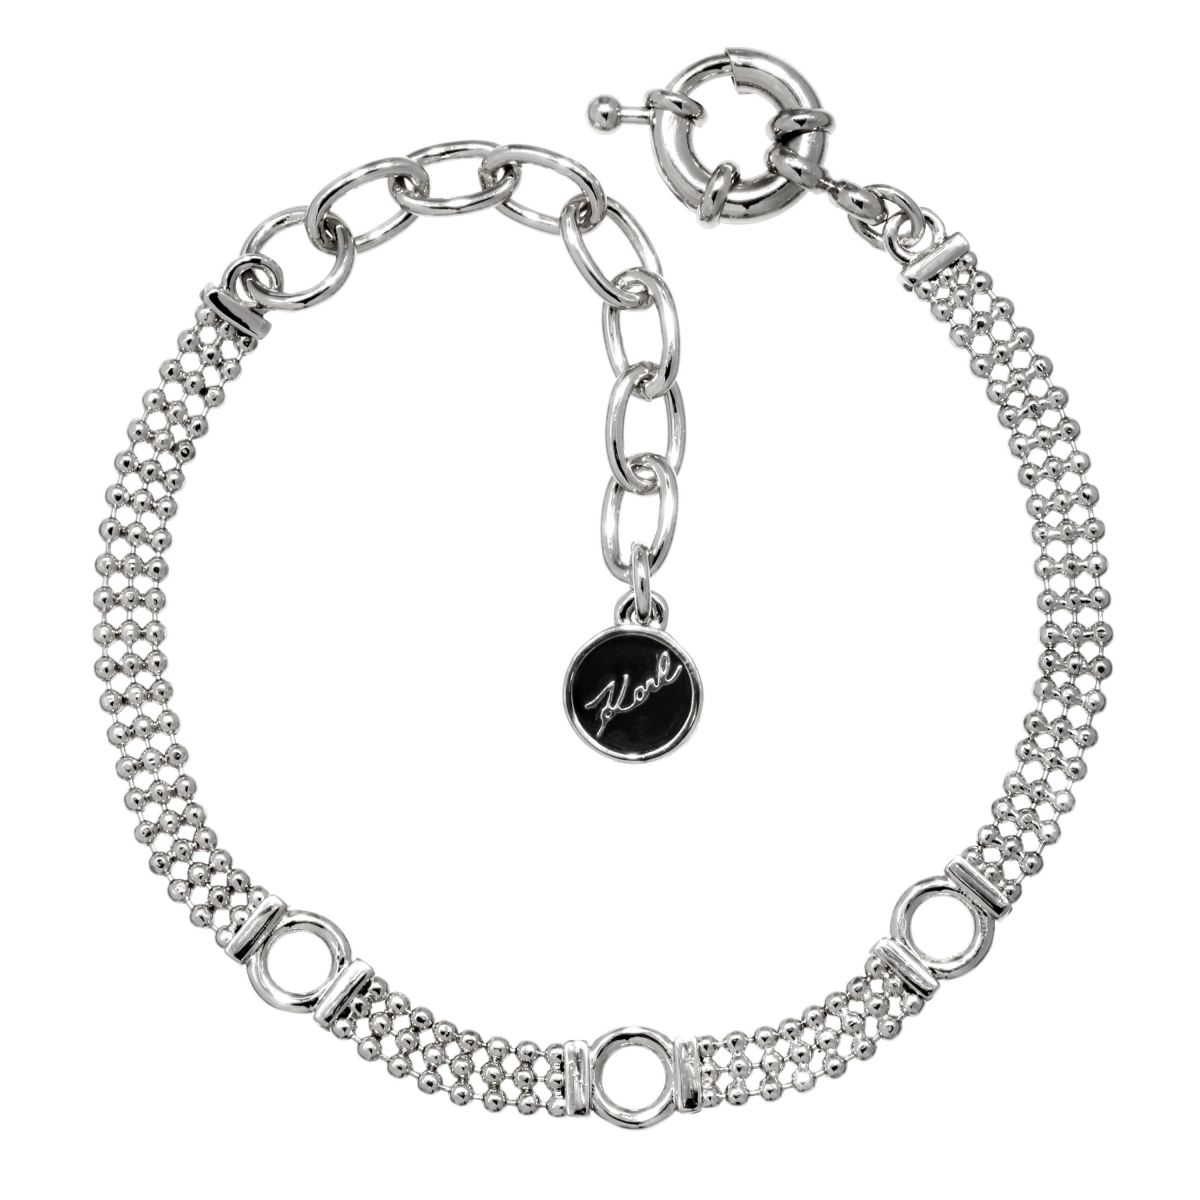 Karl Lagerfeld Dames Ball Chain Charm Bracelet Verguld Zilver 5378147 Nl Watch